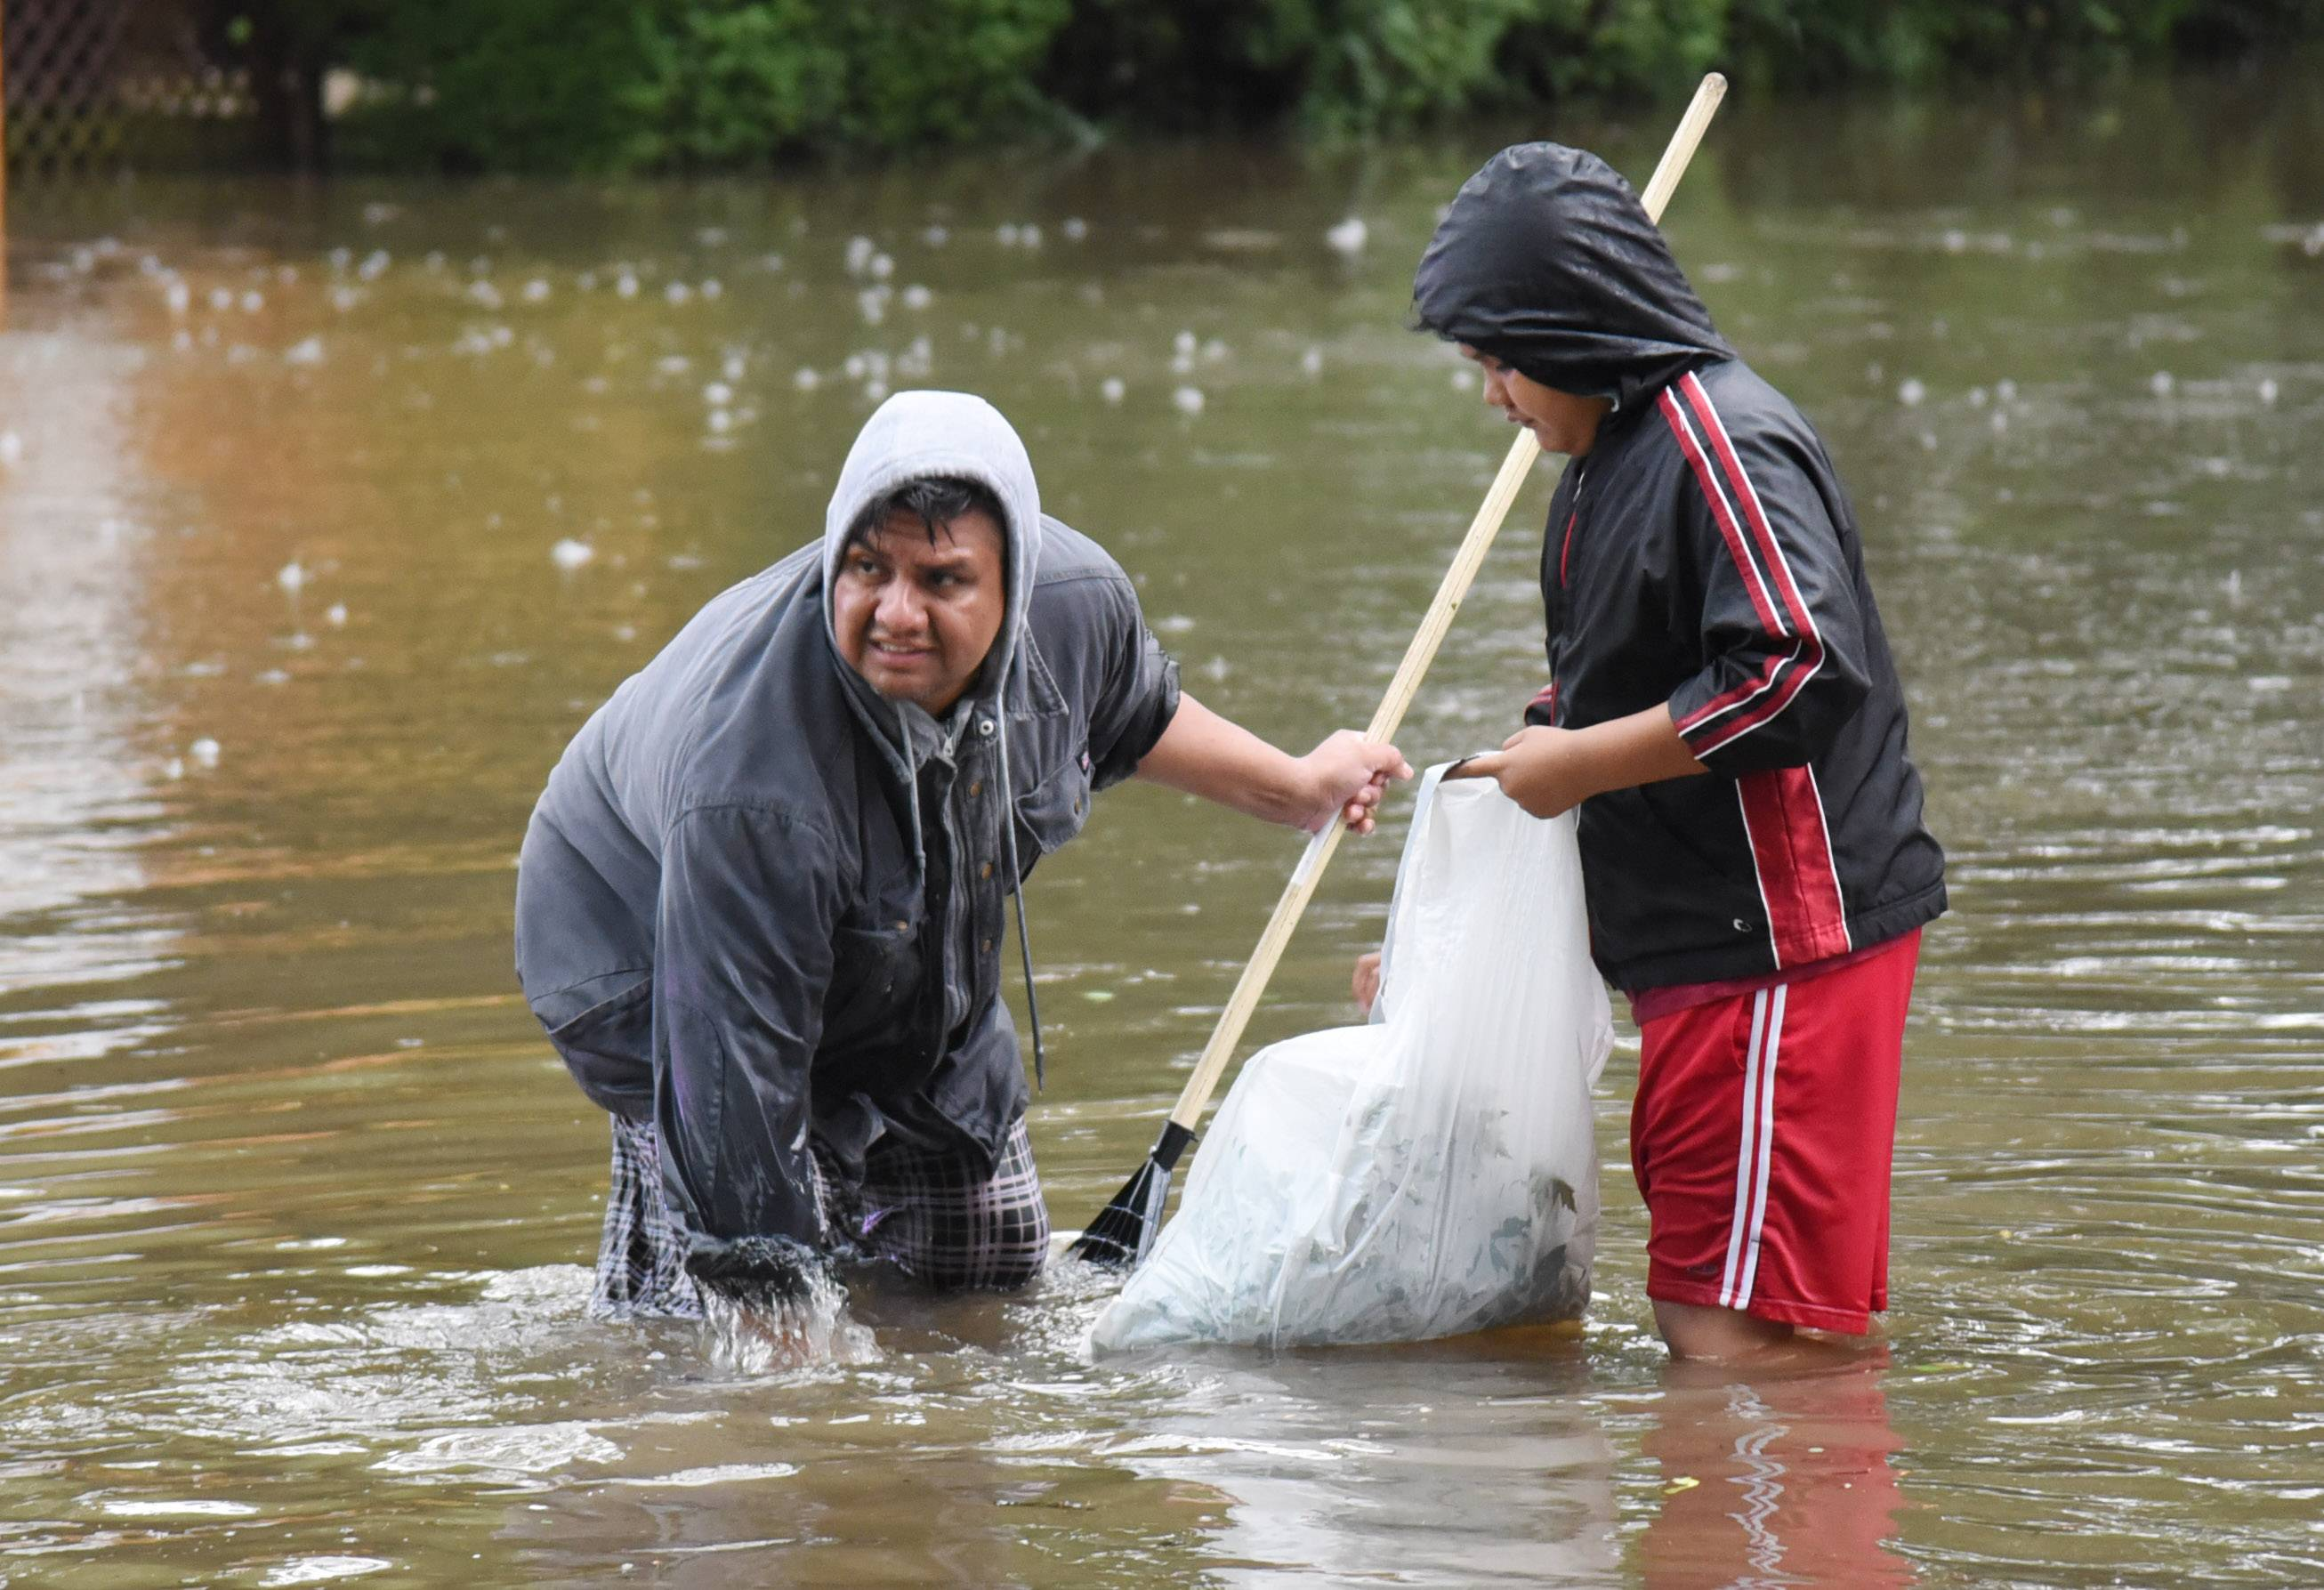 Jorge Morales and his son, Ariel, try to clear street drains in Mundelein during the July 2017 flood.